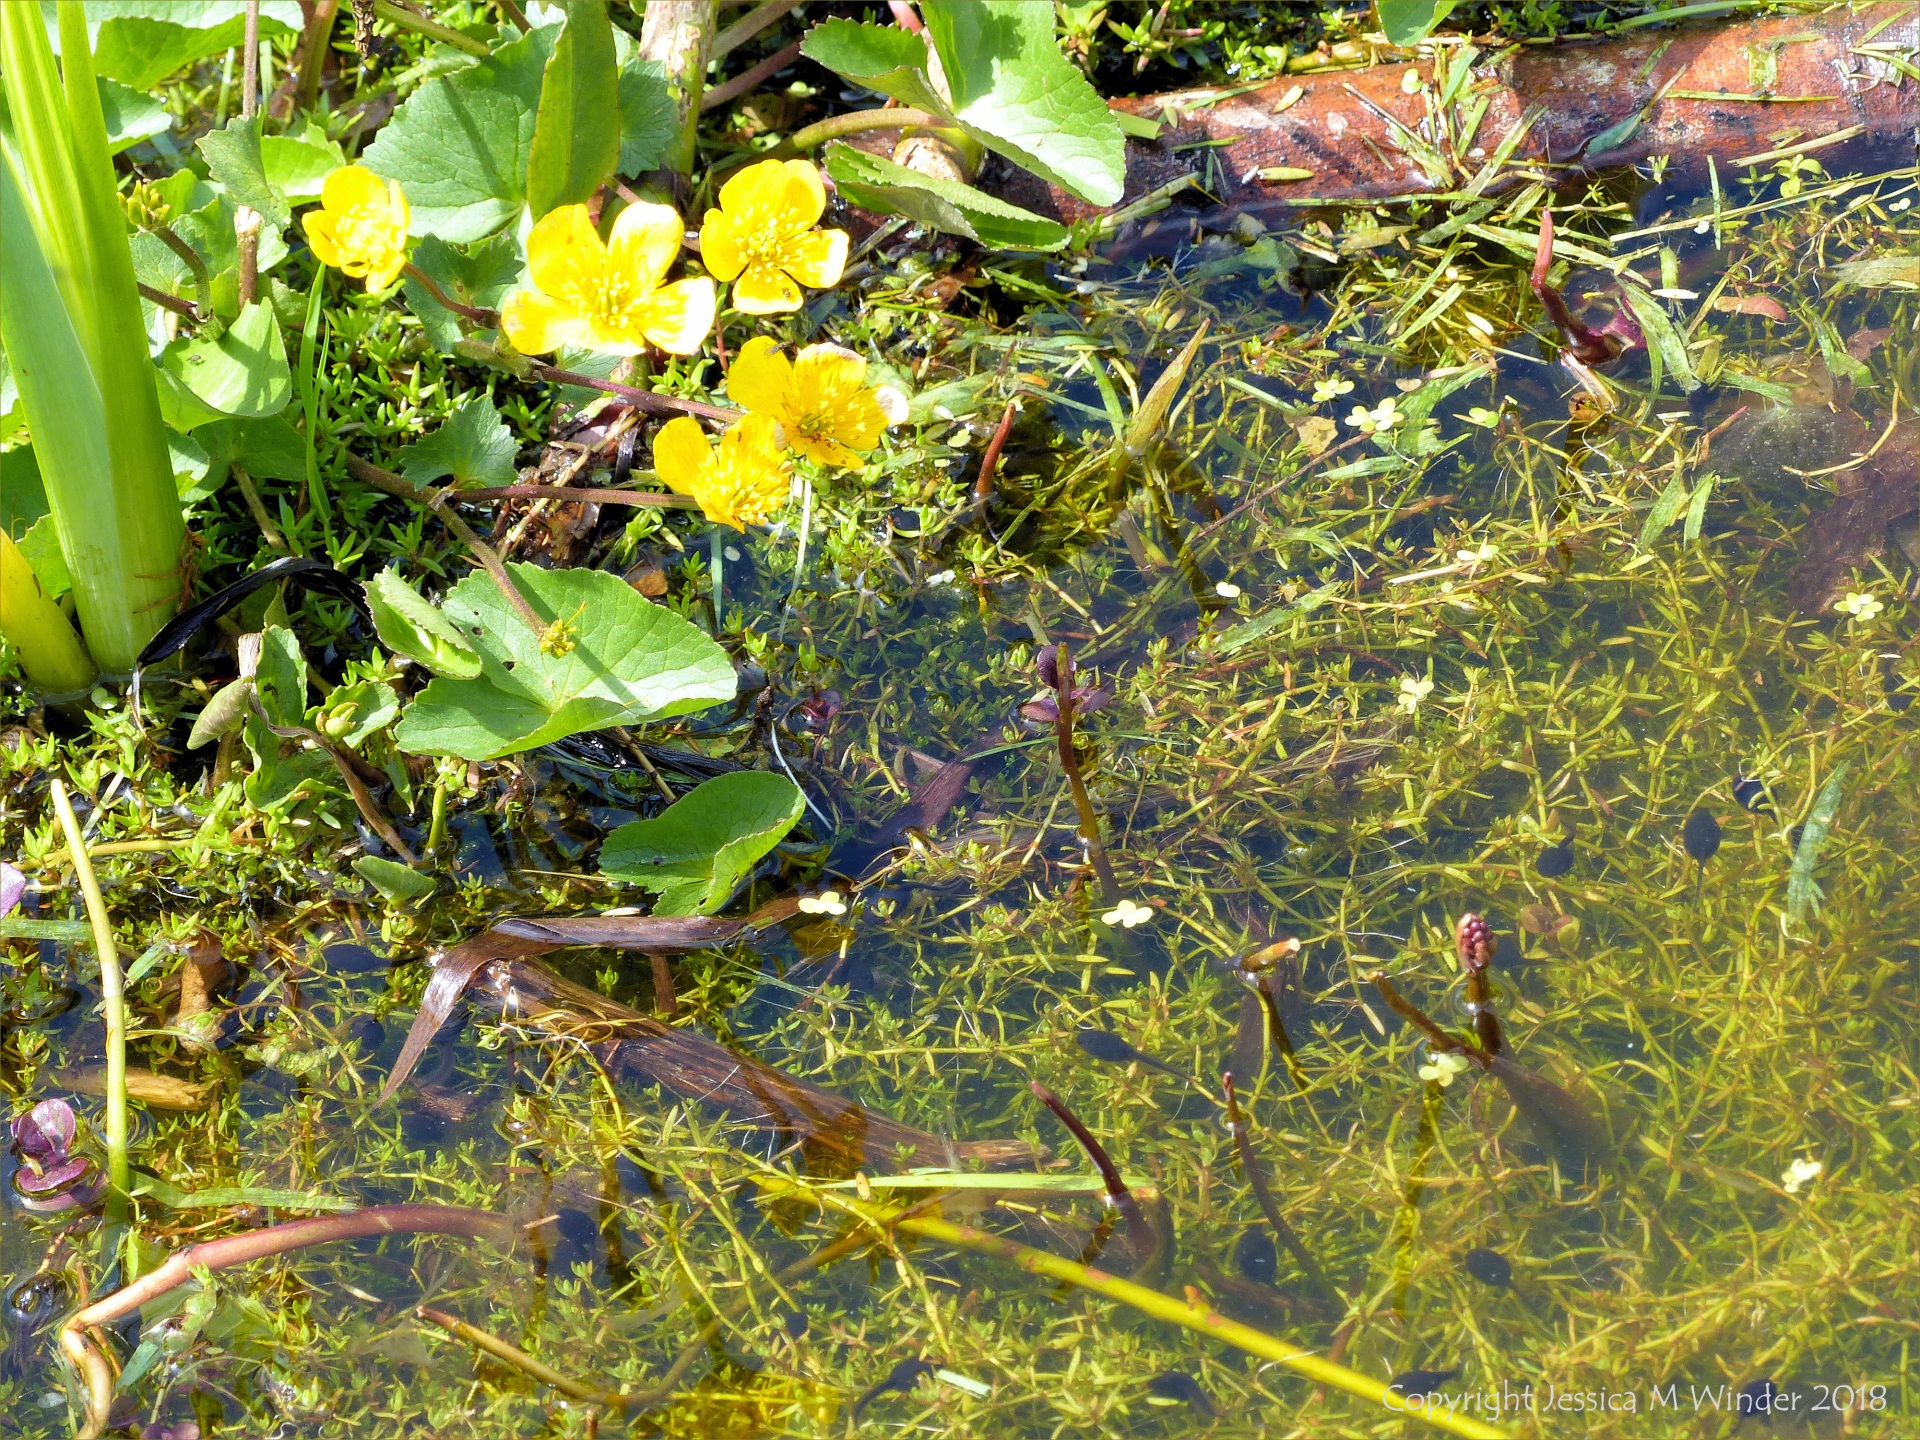 Tadpoles that will grow into toads